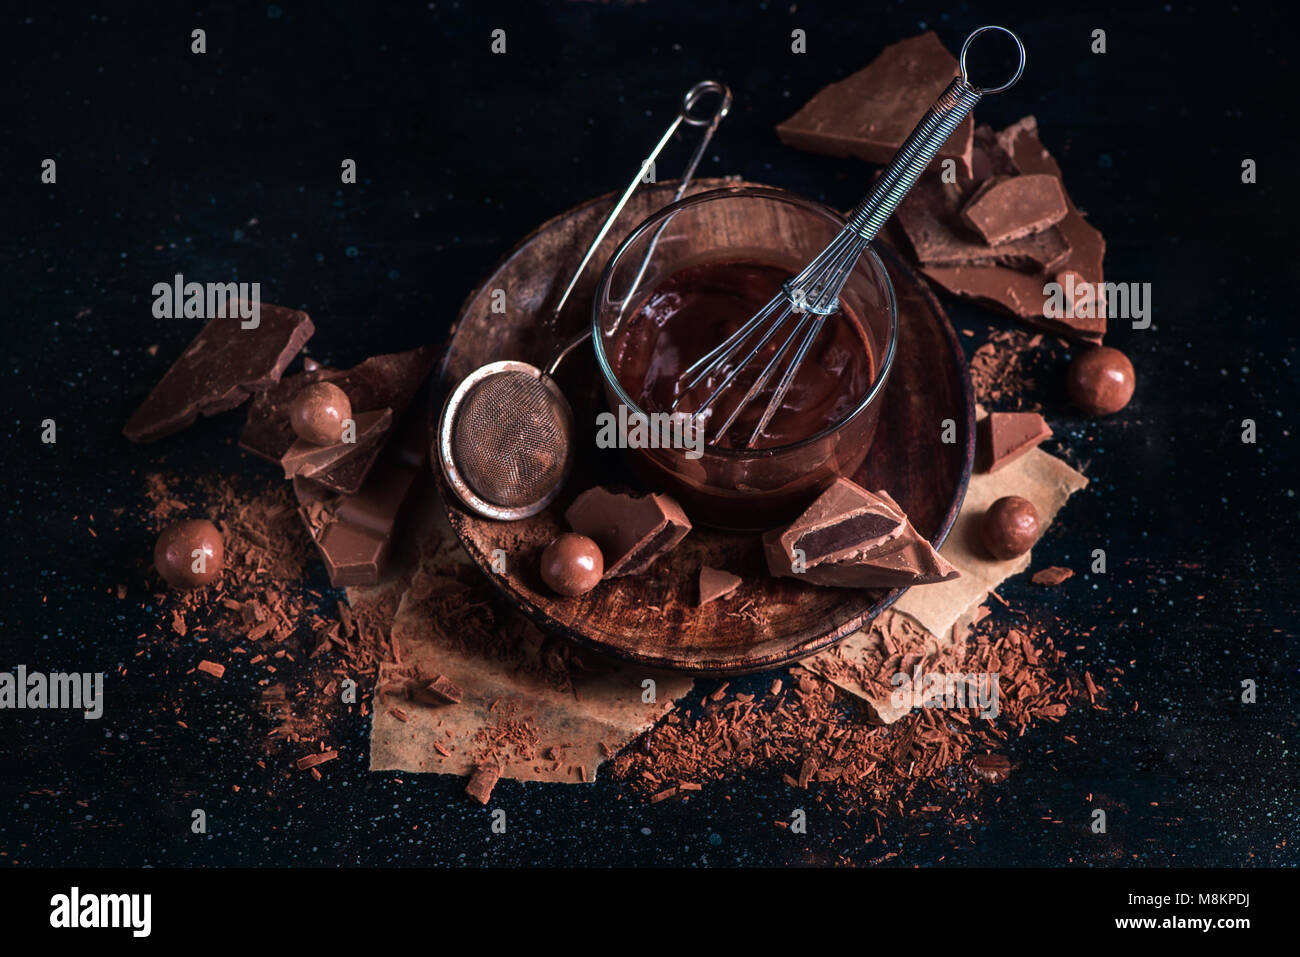 Chocolate glazing in a glass cup with a whisk. Chocolate chunks with cocoa powder, cinnamon and other spices on - Stock Image